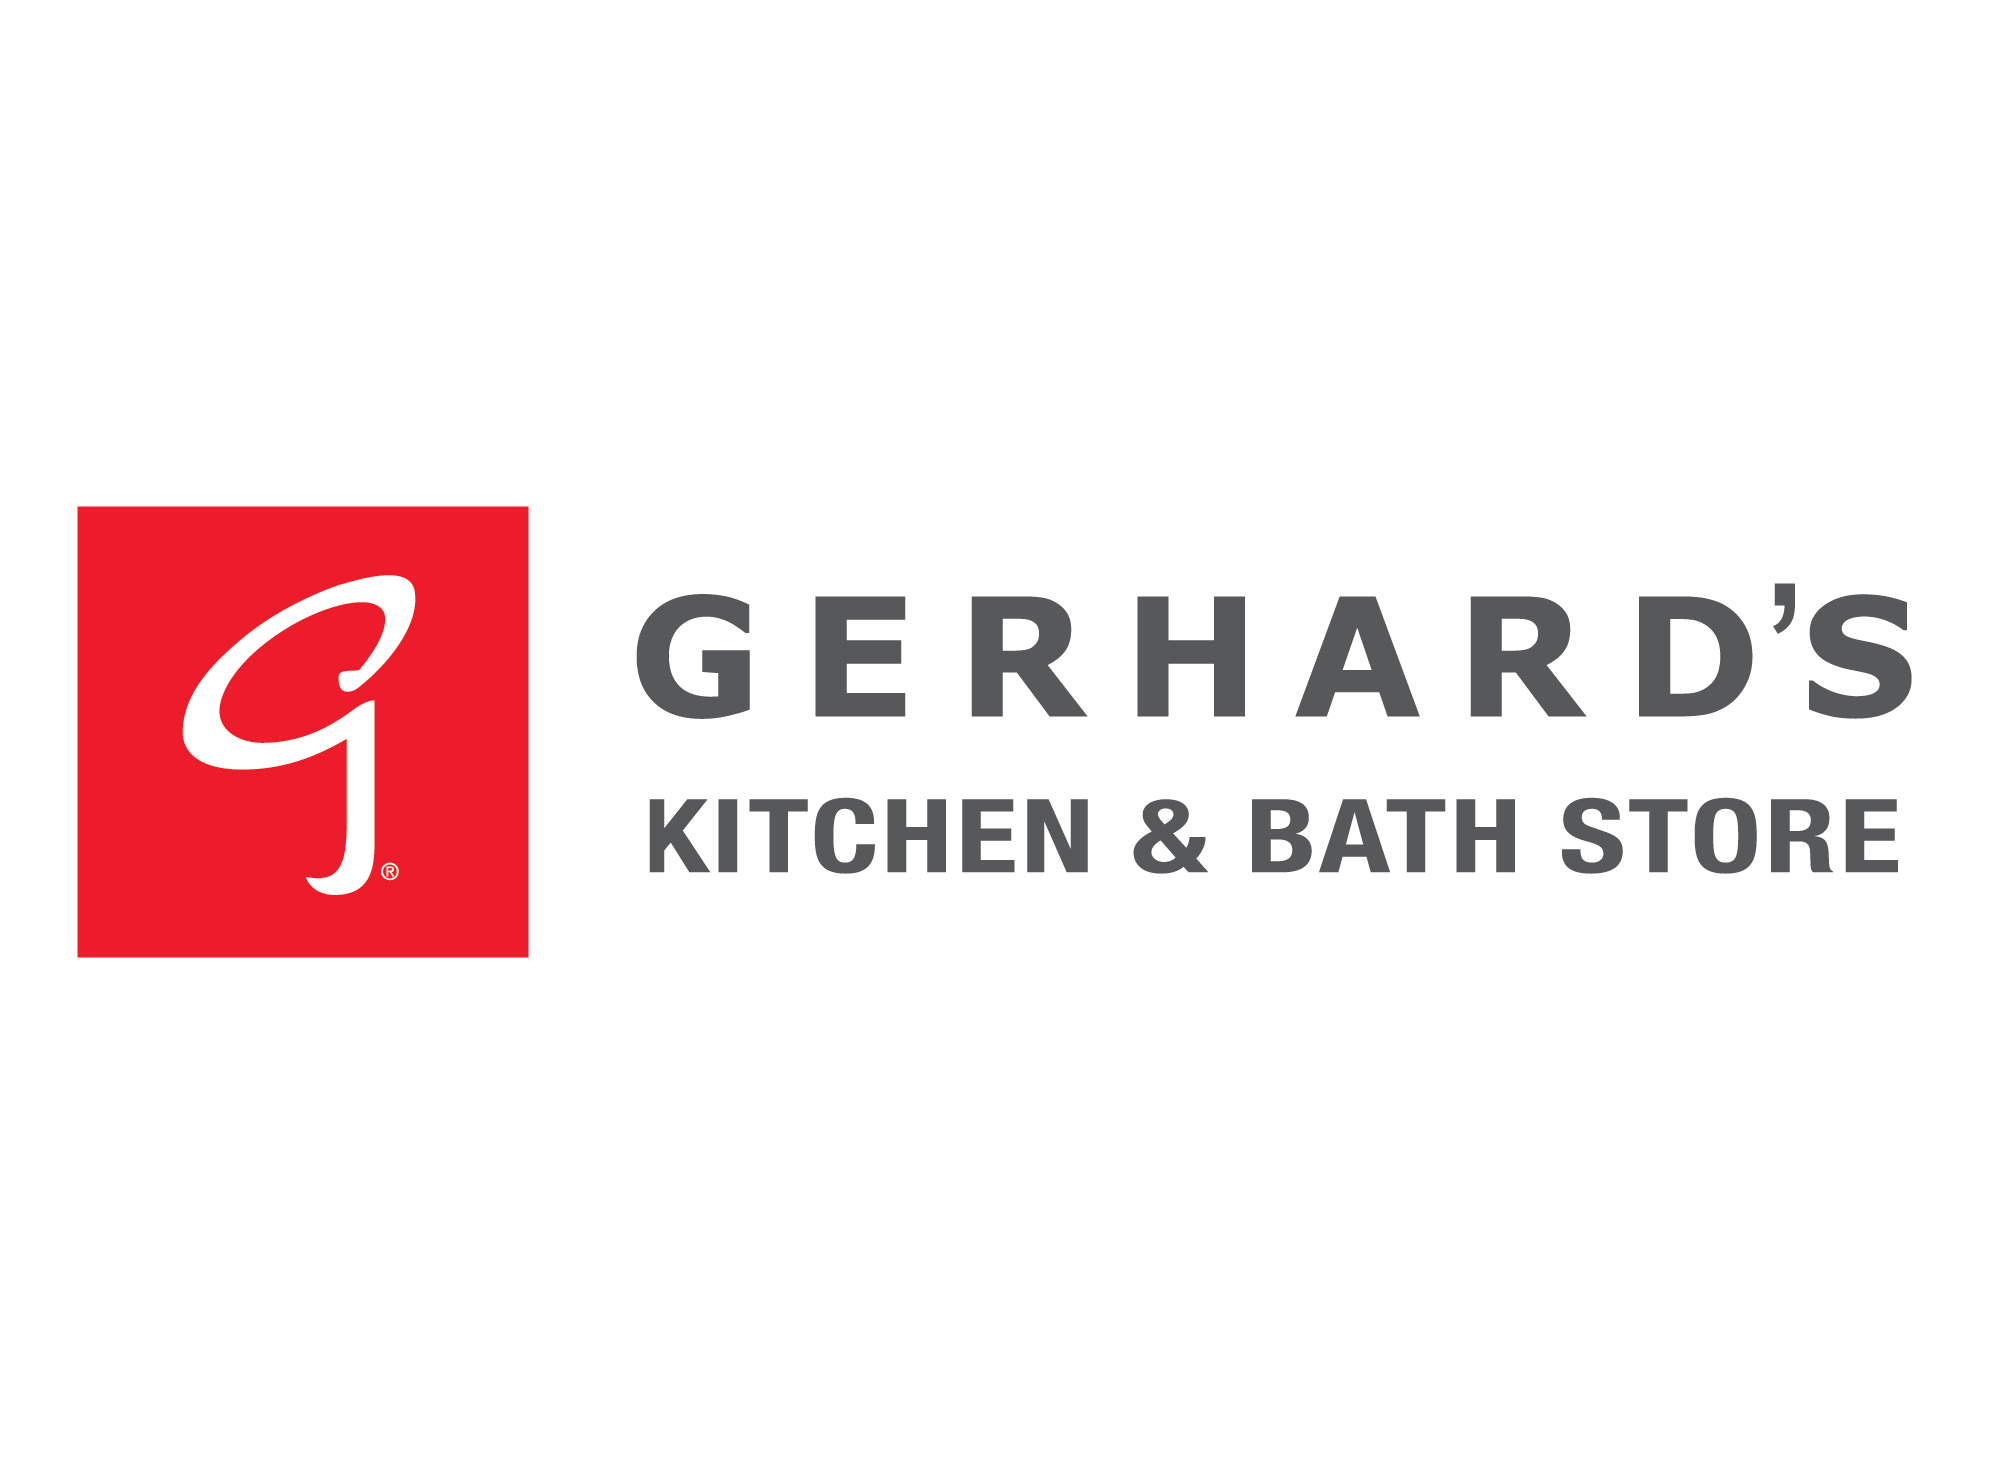 kohler bathroom & kitchen products at gerhard's kitchen & bath